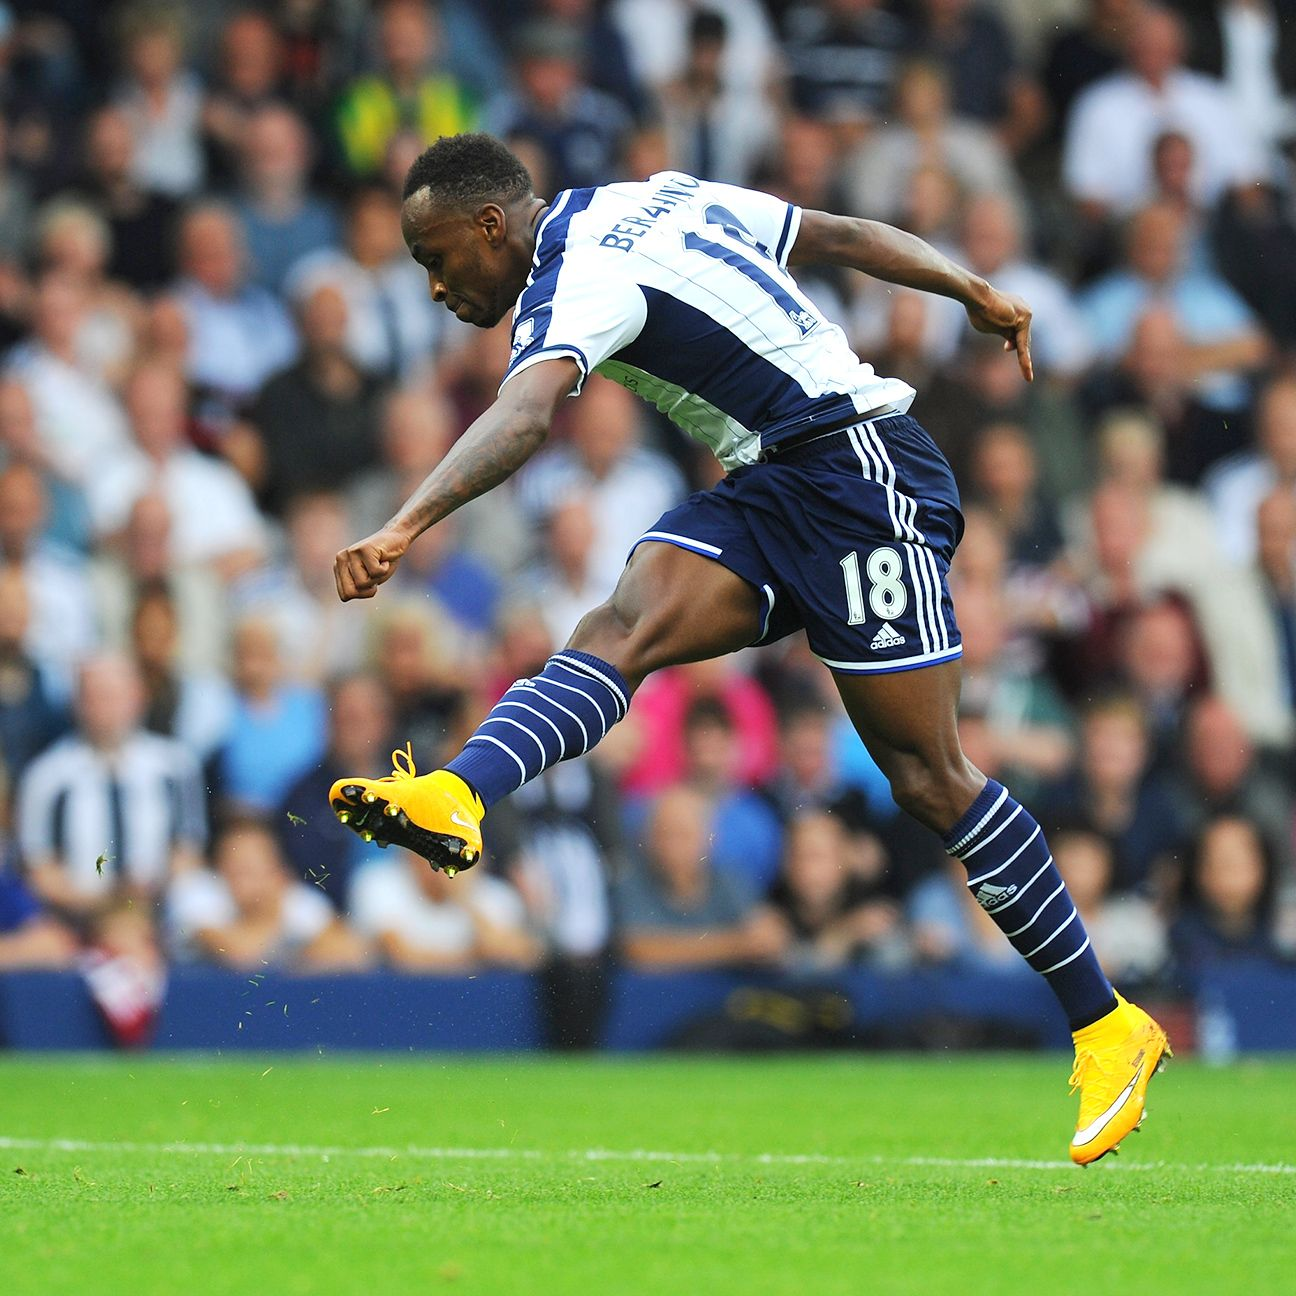 Selling Saido Berahino could be just the thing that helps West Brom survive relegation this season.